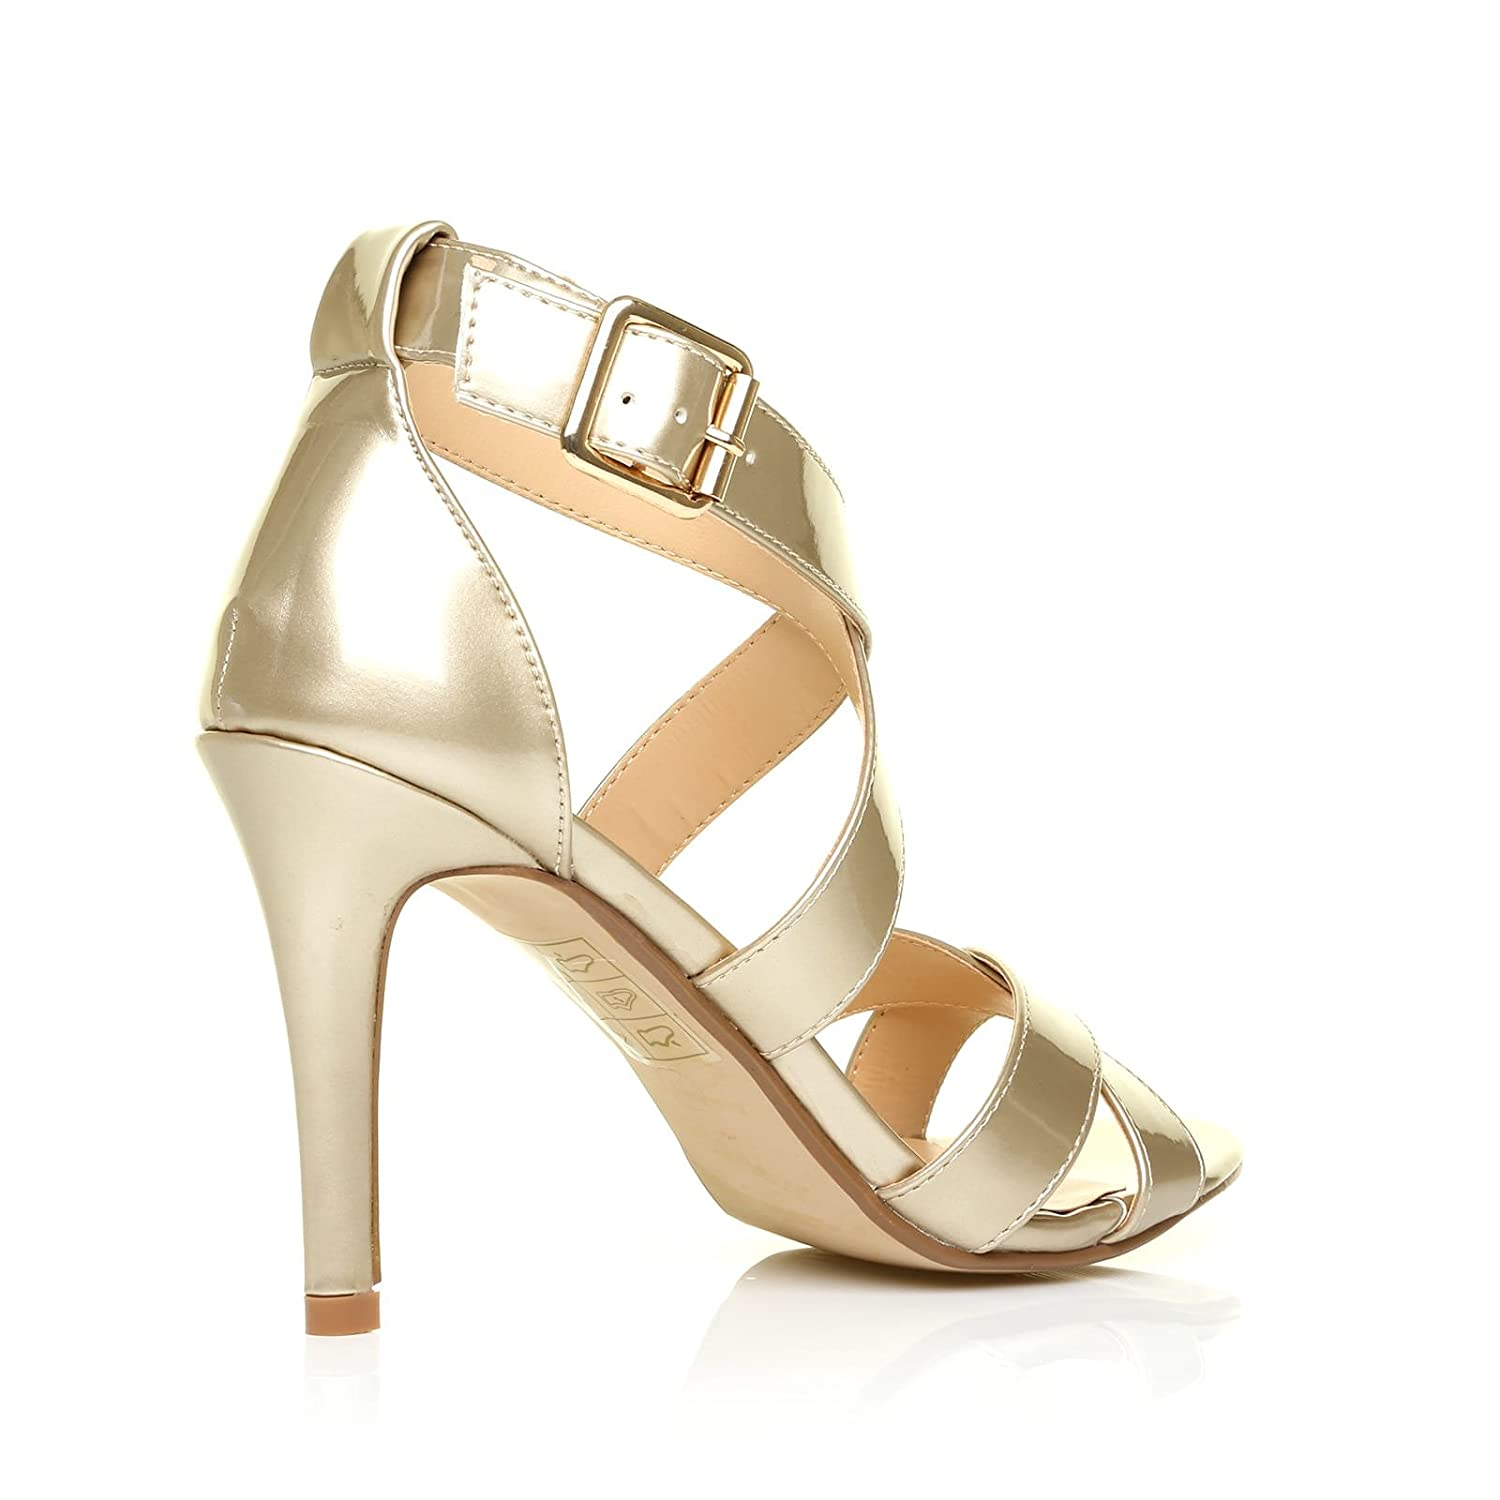 2db527d4543 ShuWish UK Sophie Champagne Gold Metallic Strappy High Heel Sandals   Amazon.co.uk  Shoes   Bags